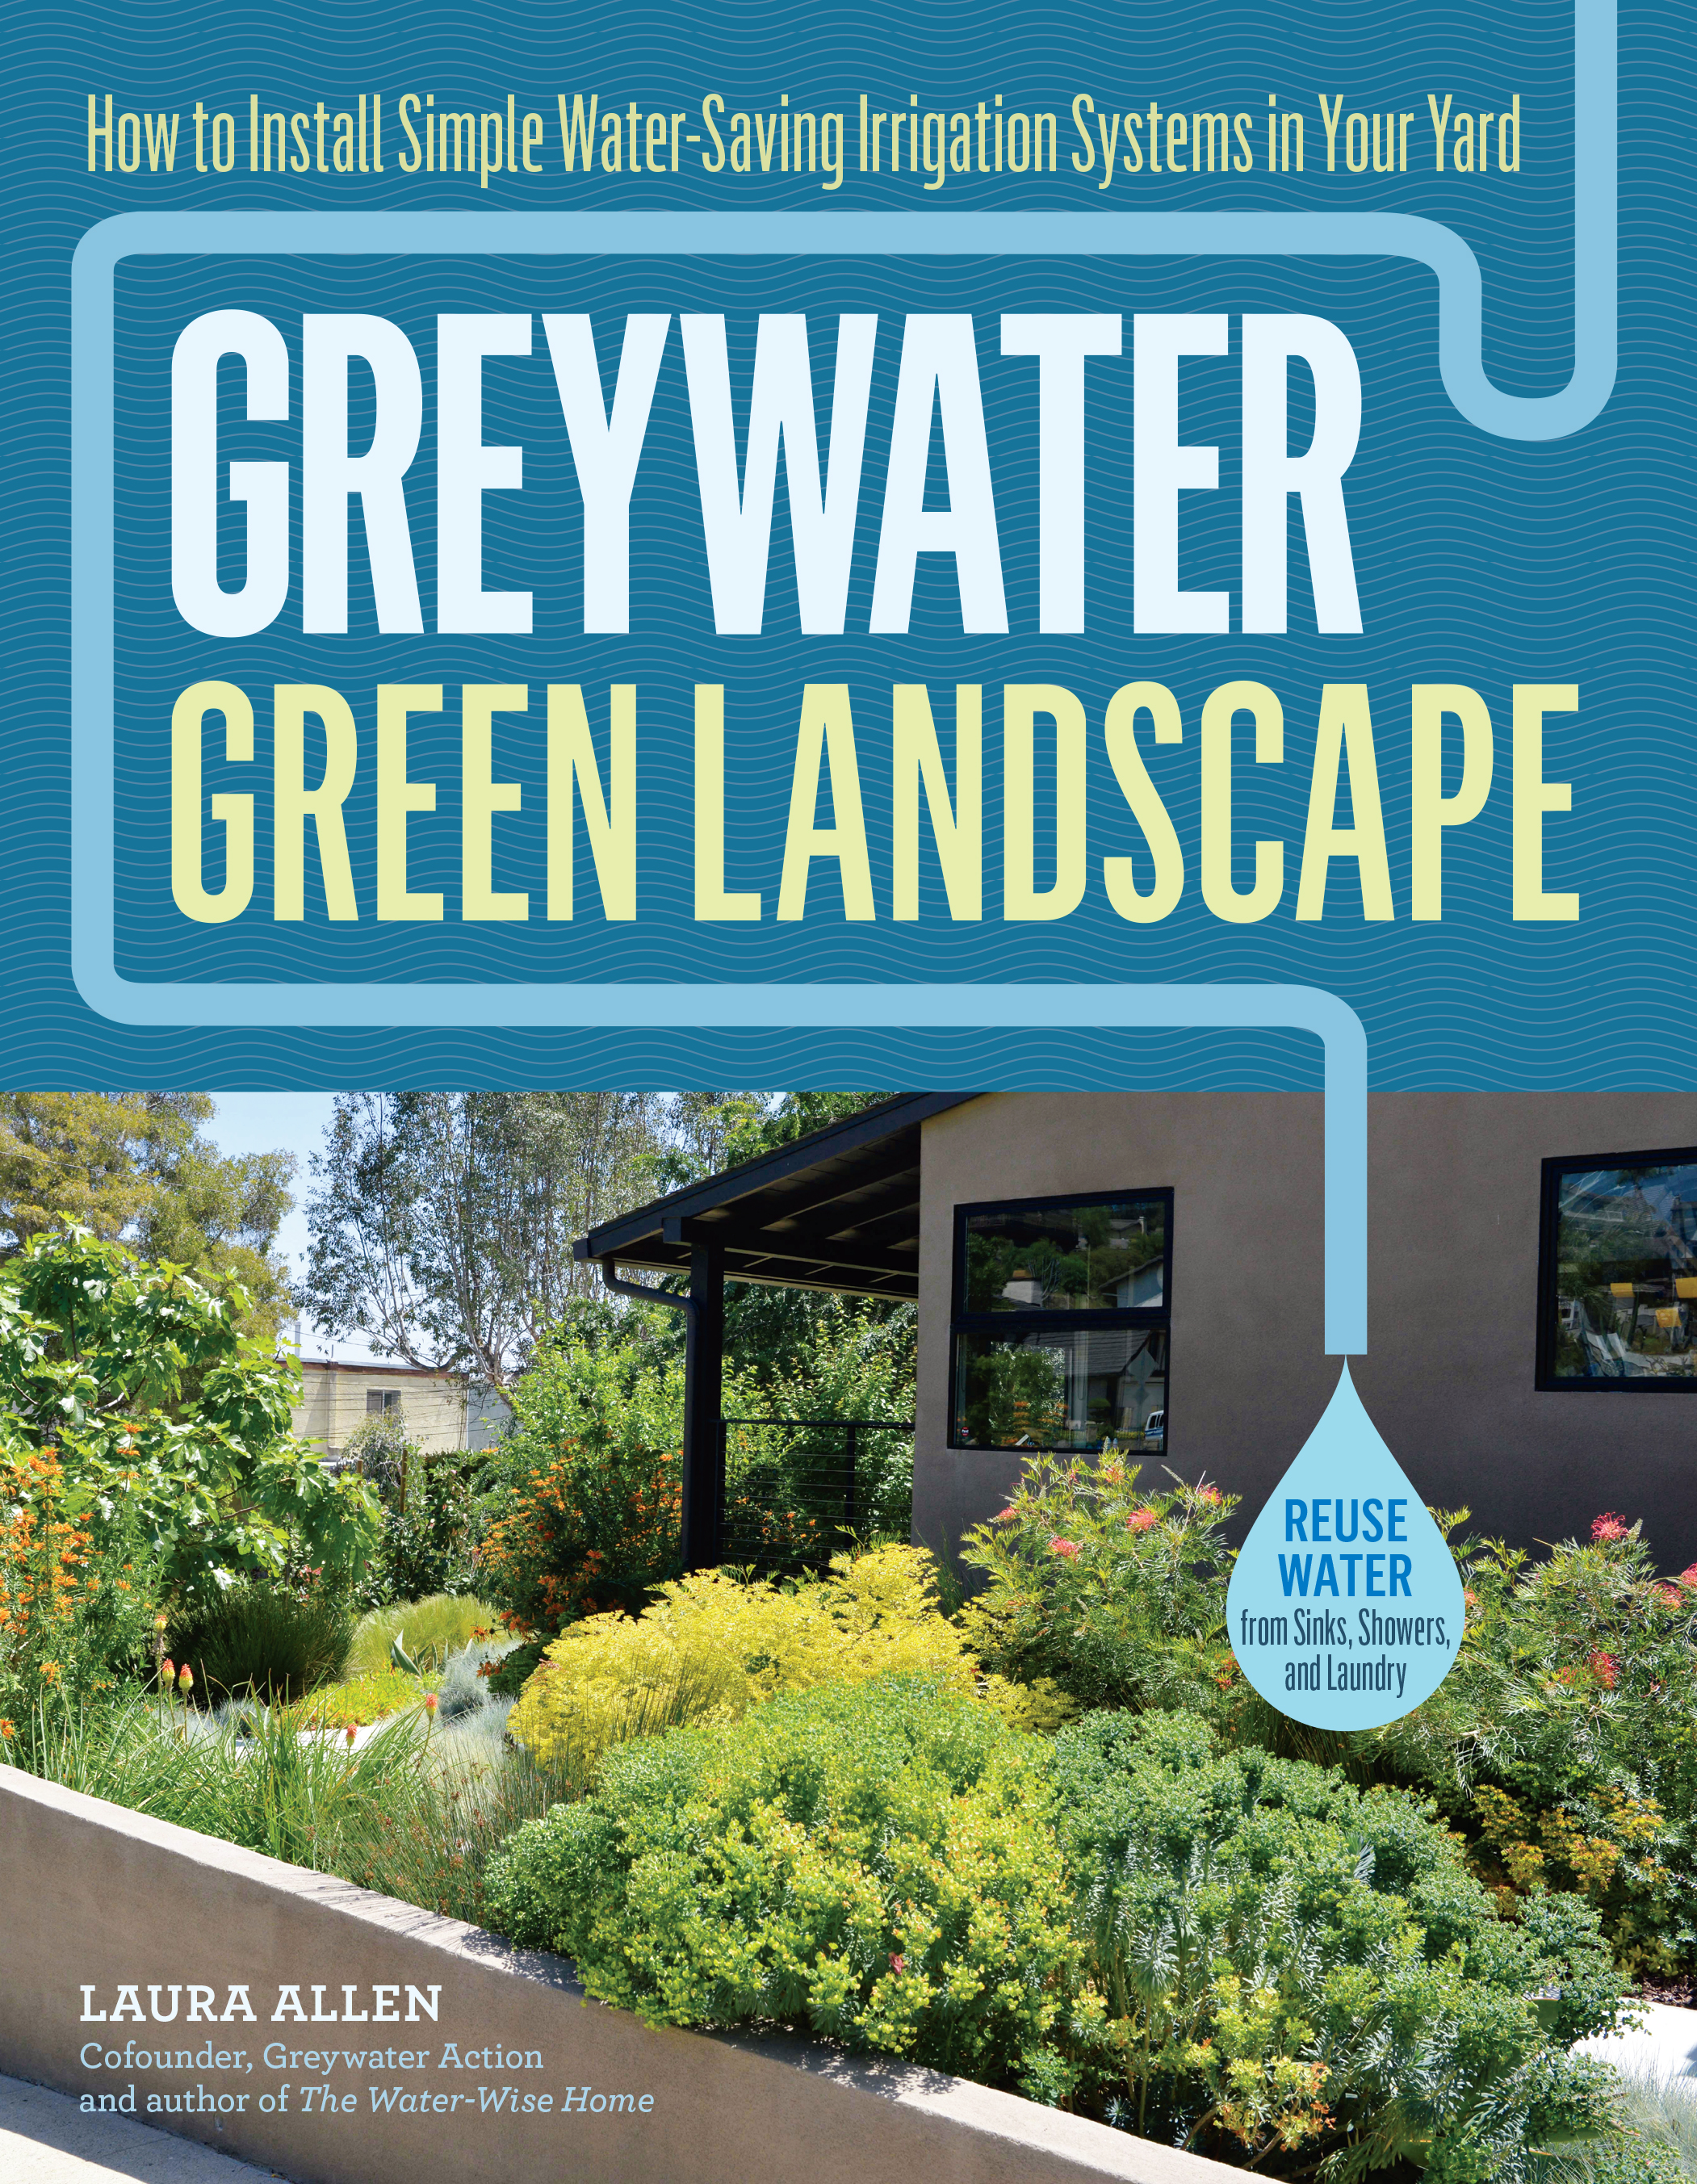 Greywater, Green Landscape How to Install Simple Water-Saving Irrigation Systems in Your Yard - Laura Allen